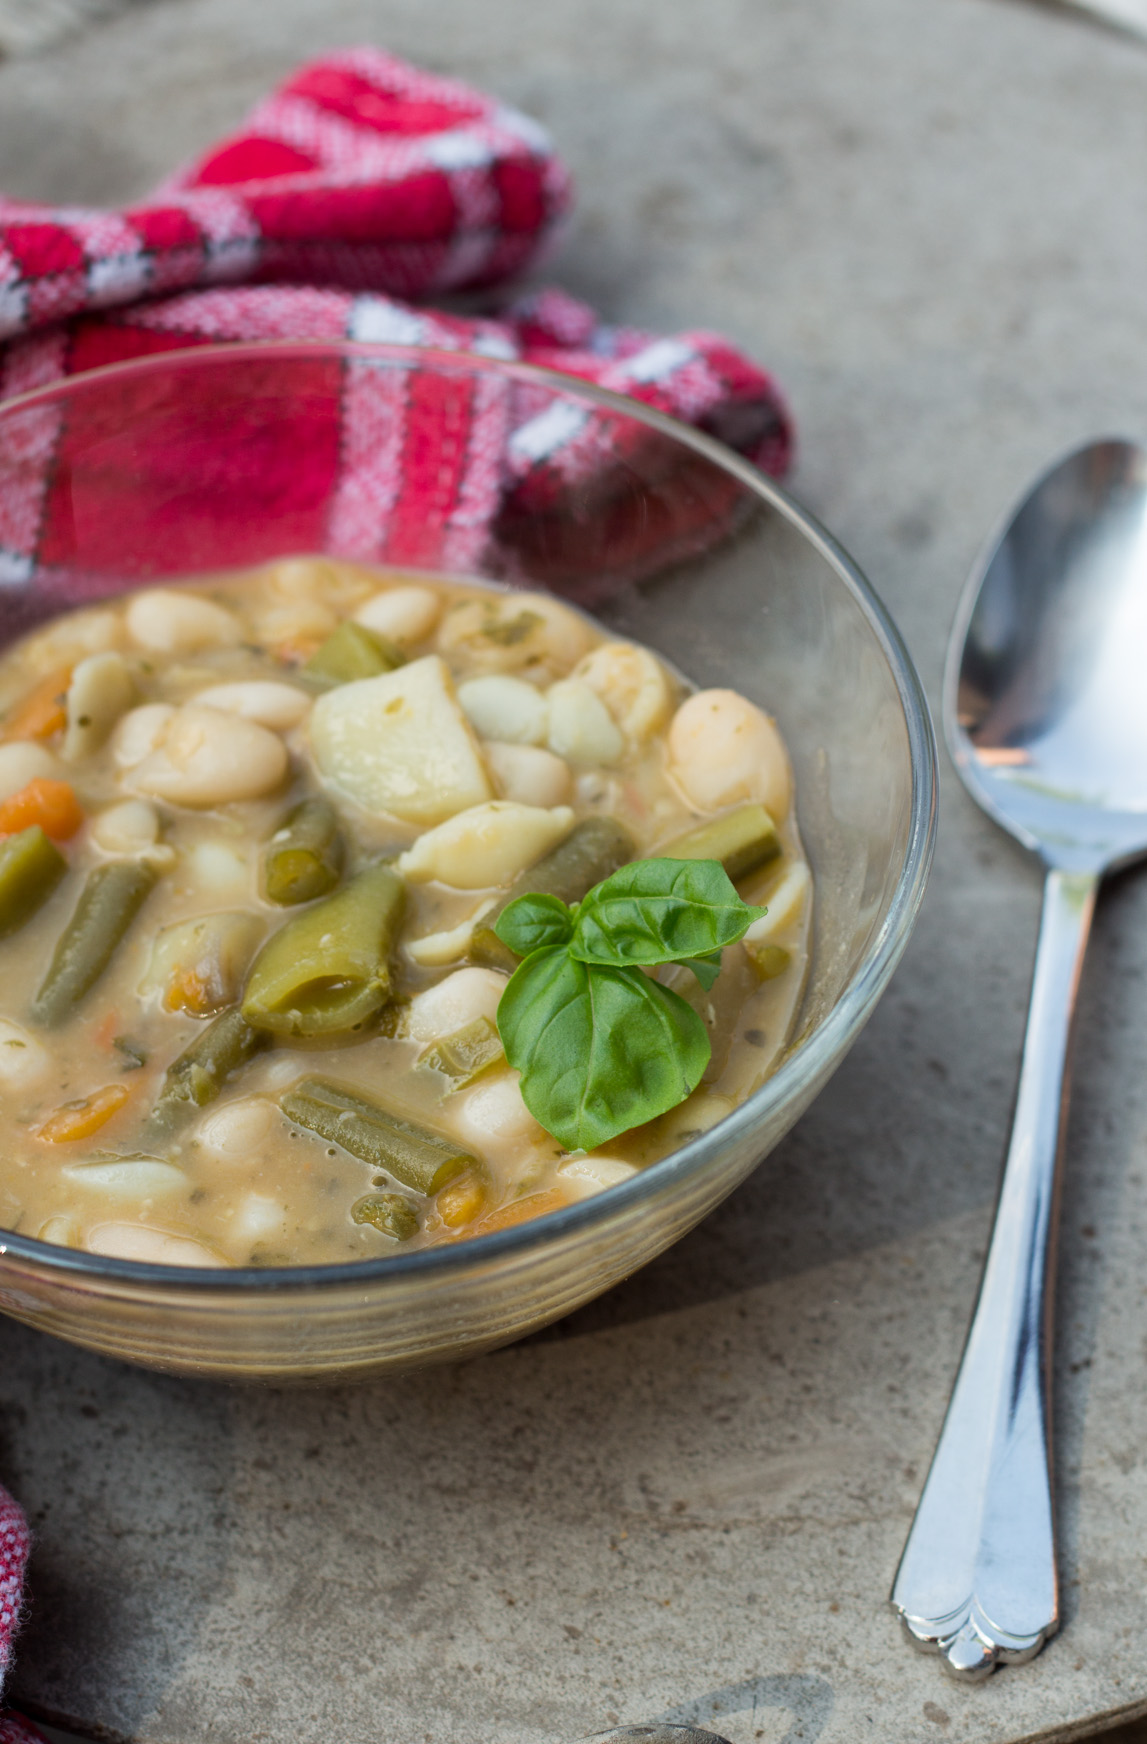 Soupe au pistou, a French summer soup